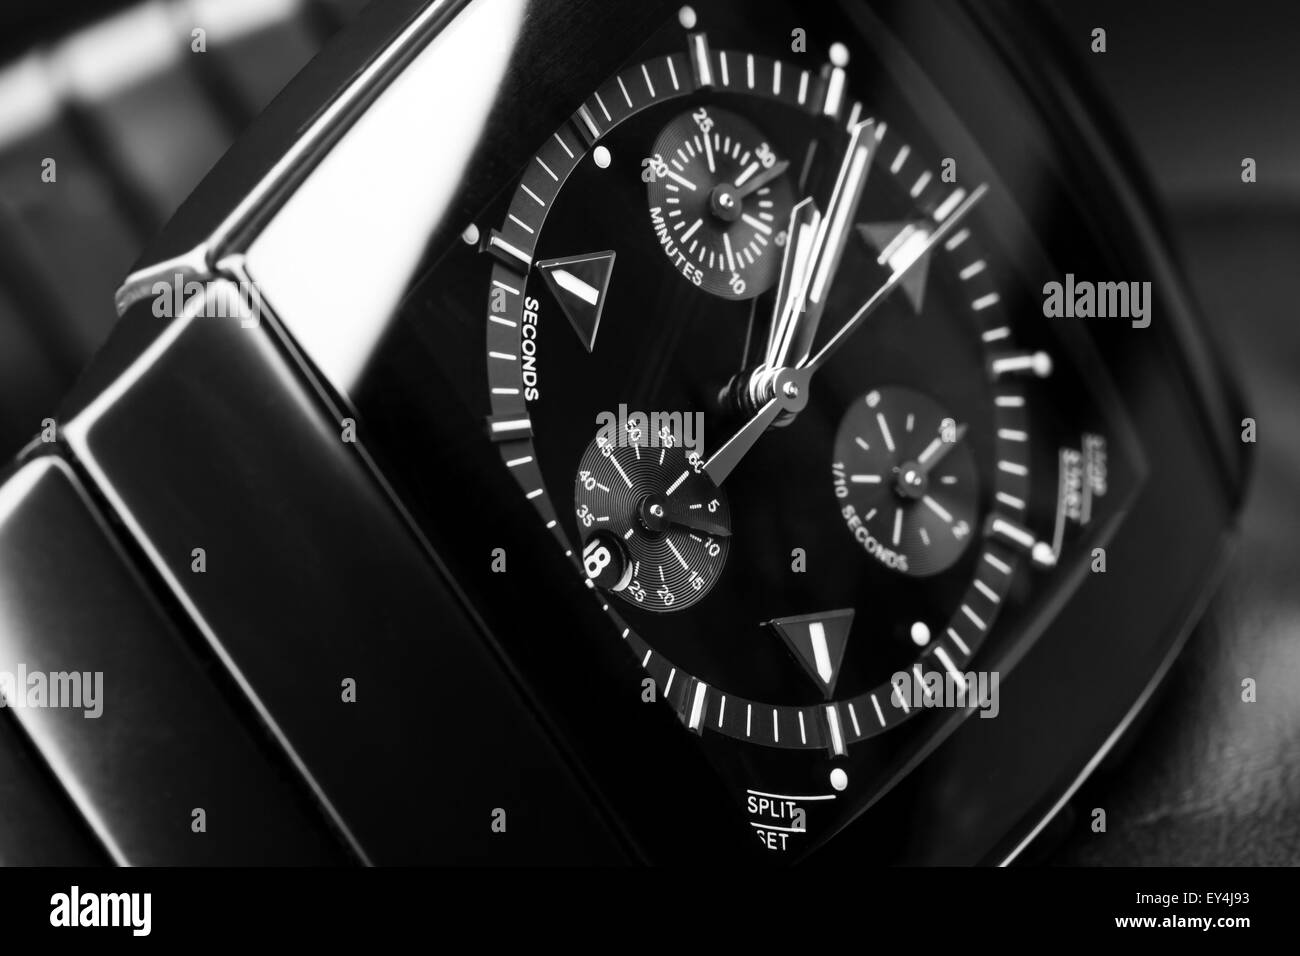 Luxury mens chronograph watch made of black high-tech ceramics. Close-up studio photo with selective focus - Stock Image